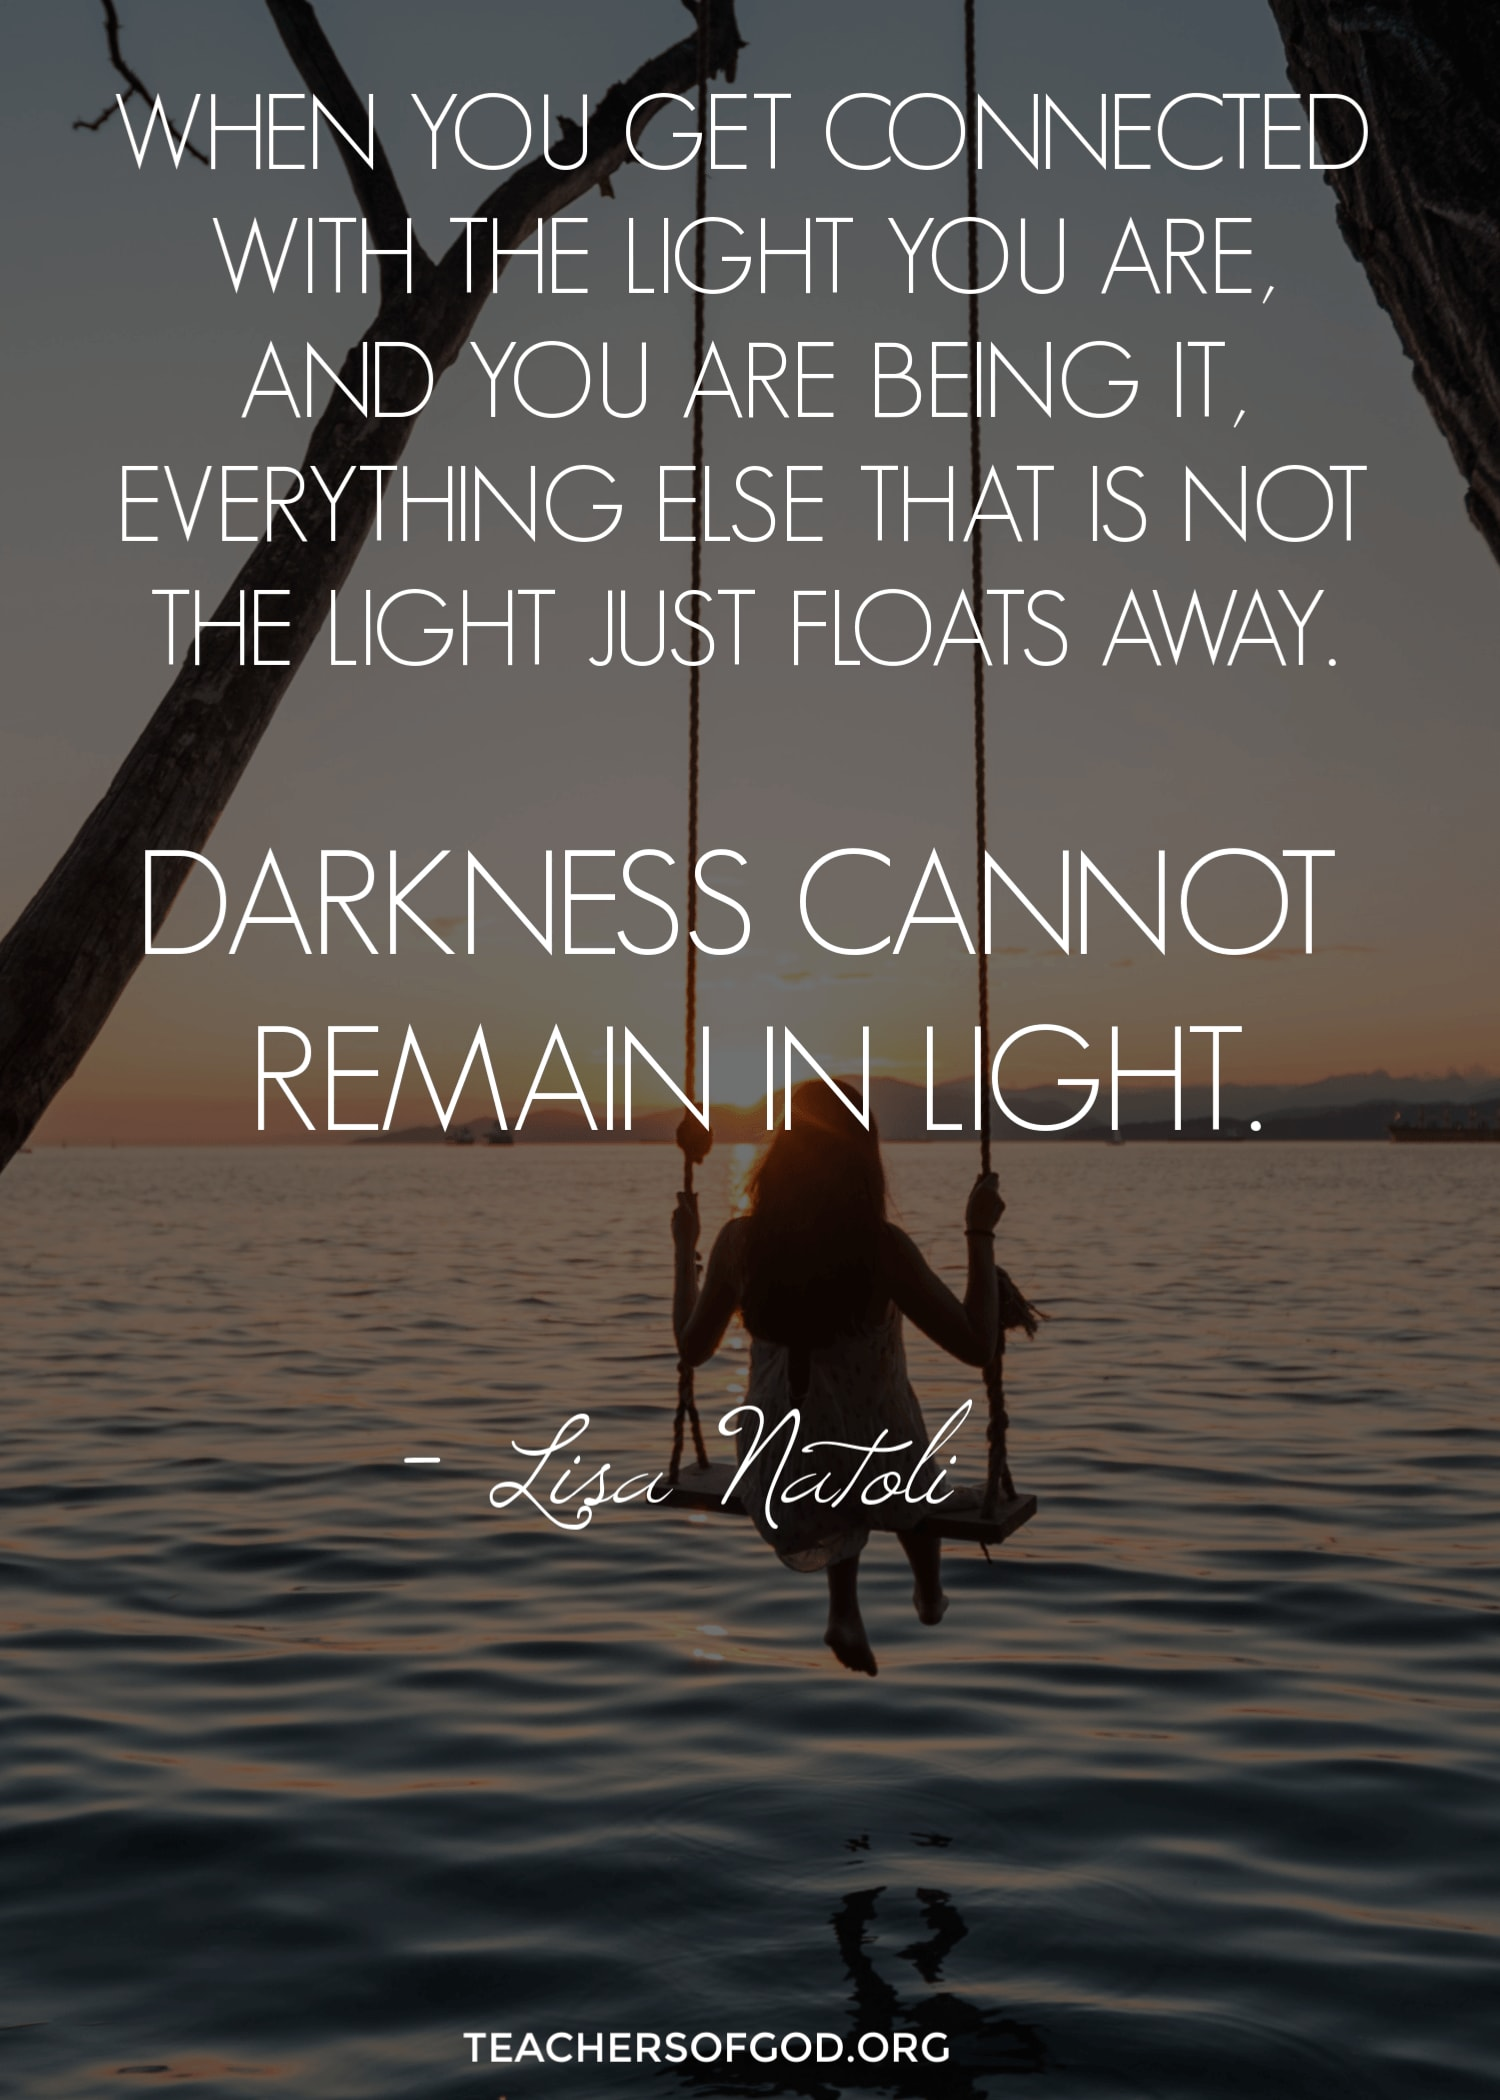 Darkness cannot remain in light